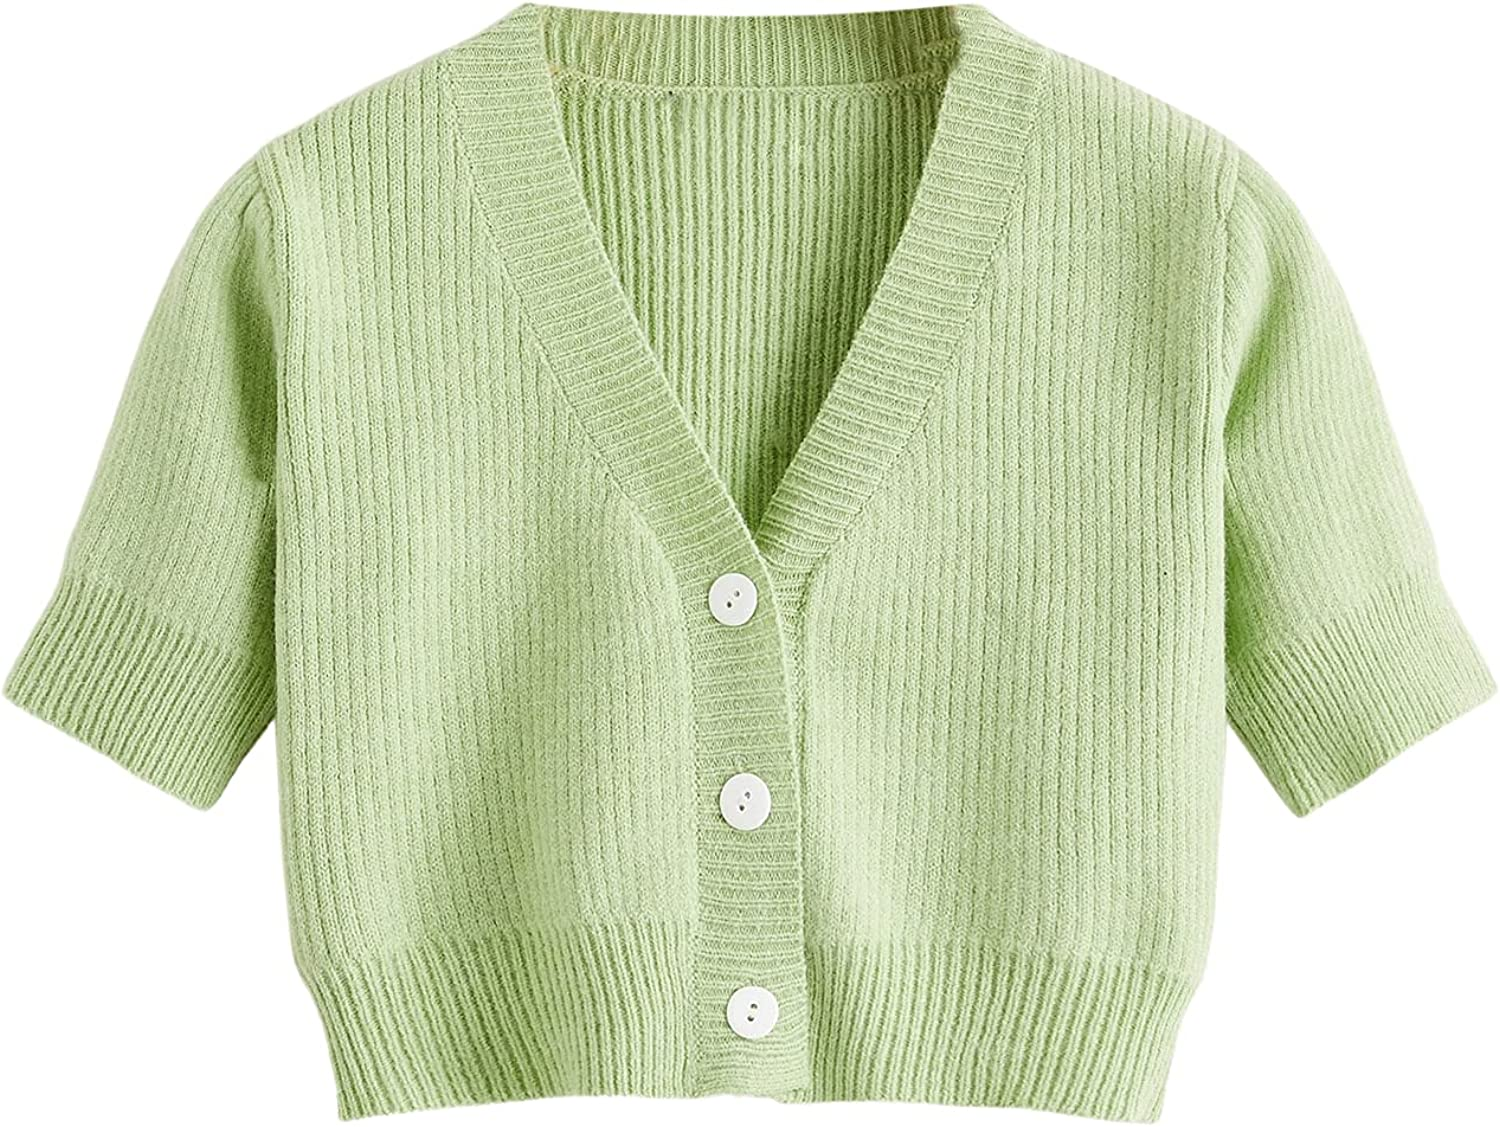 SheIn Women's Cropped Cardigan Short Sleeve Button Down V Neck Knitted Sweater